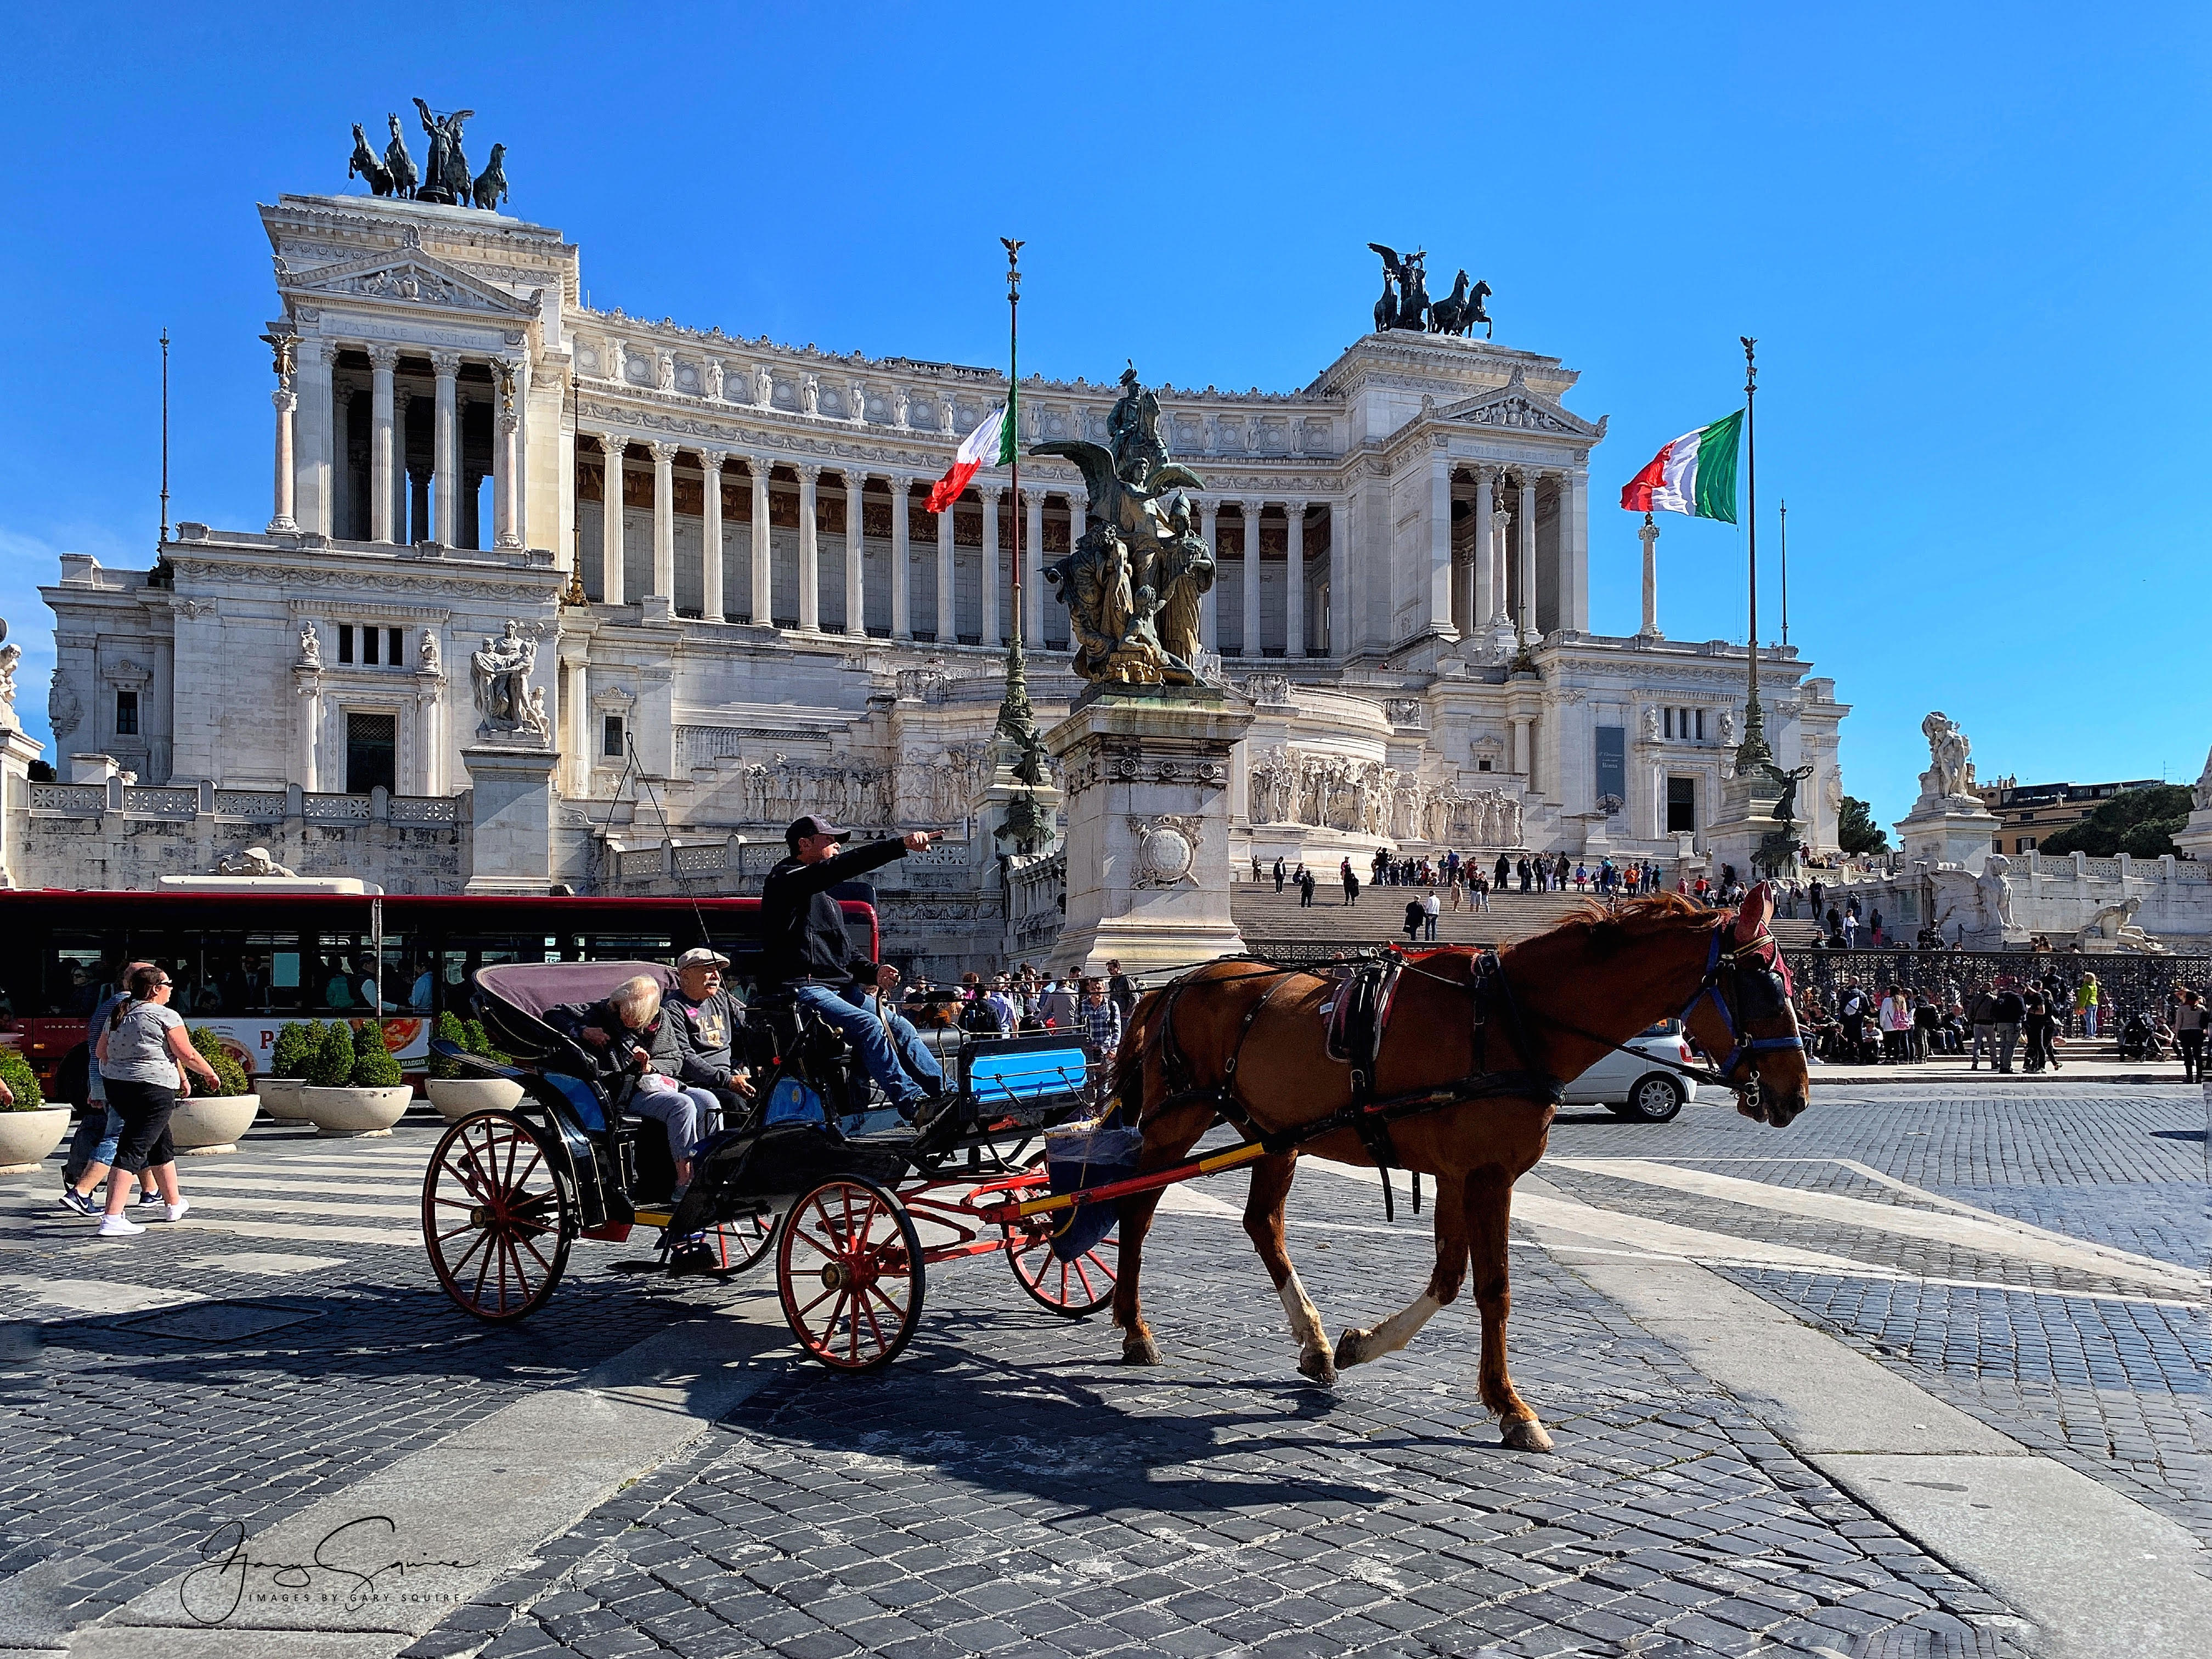 Horse Drawn Carriage, Rome